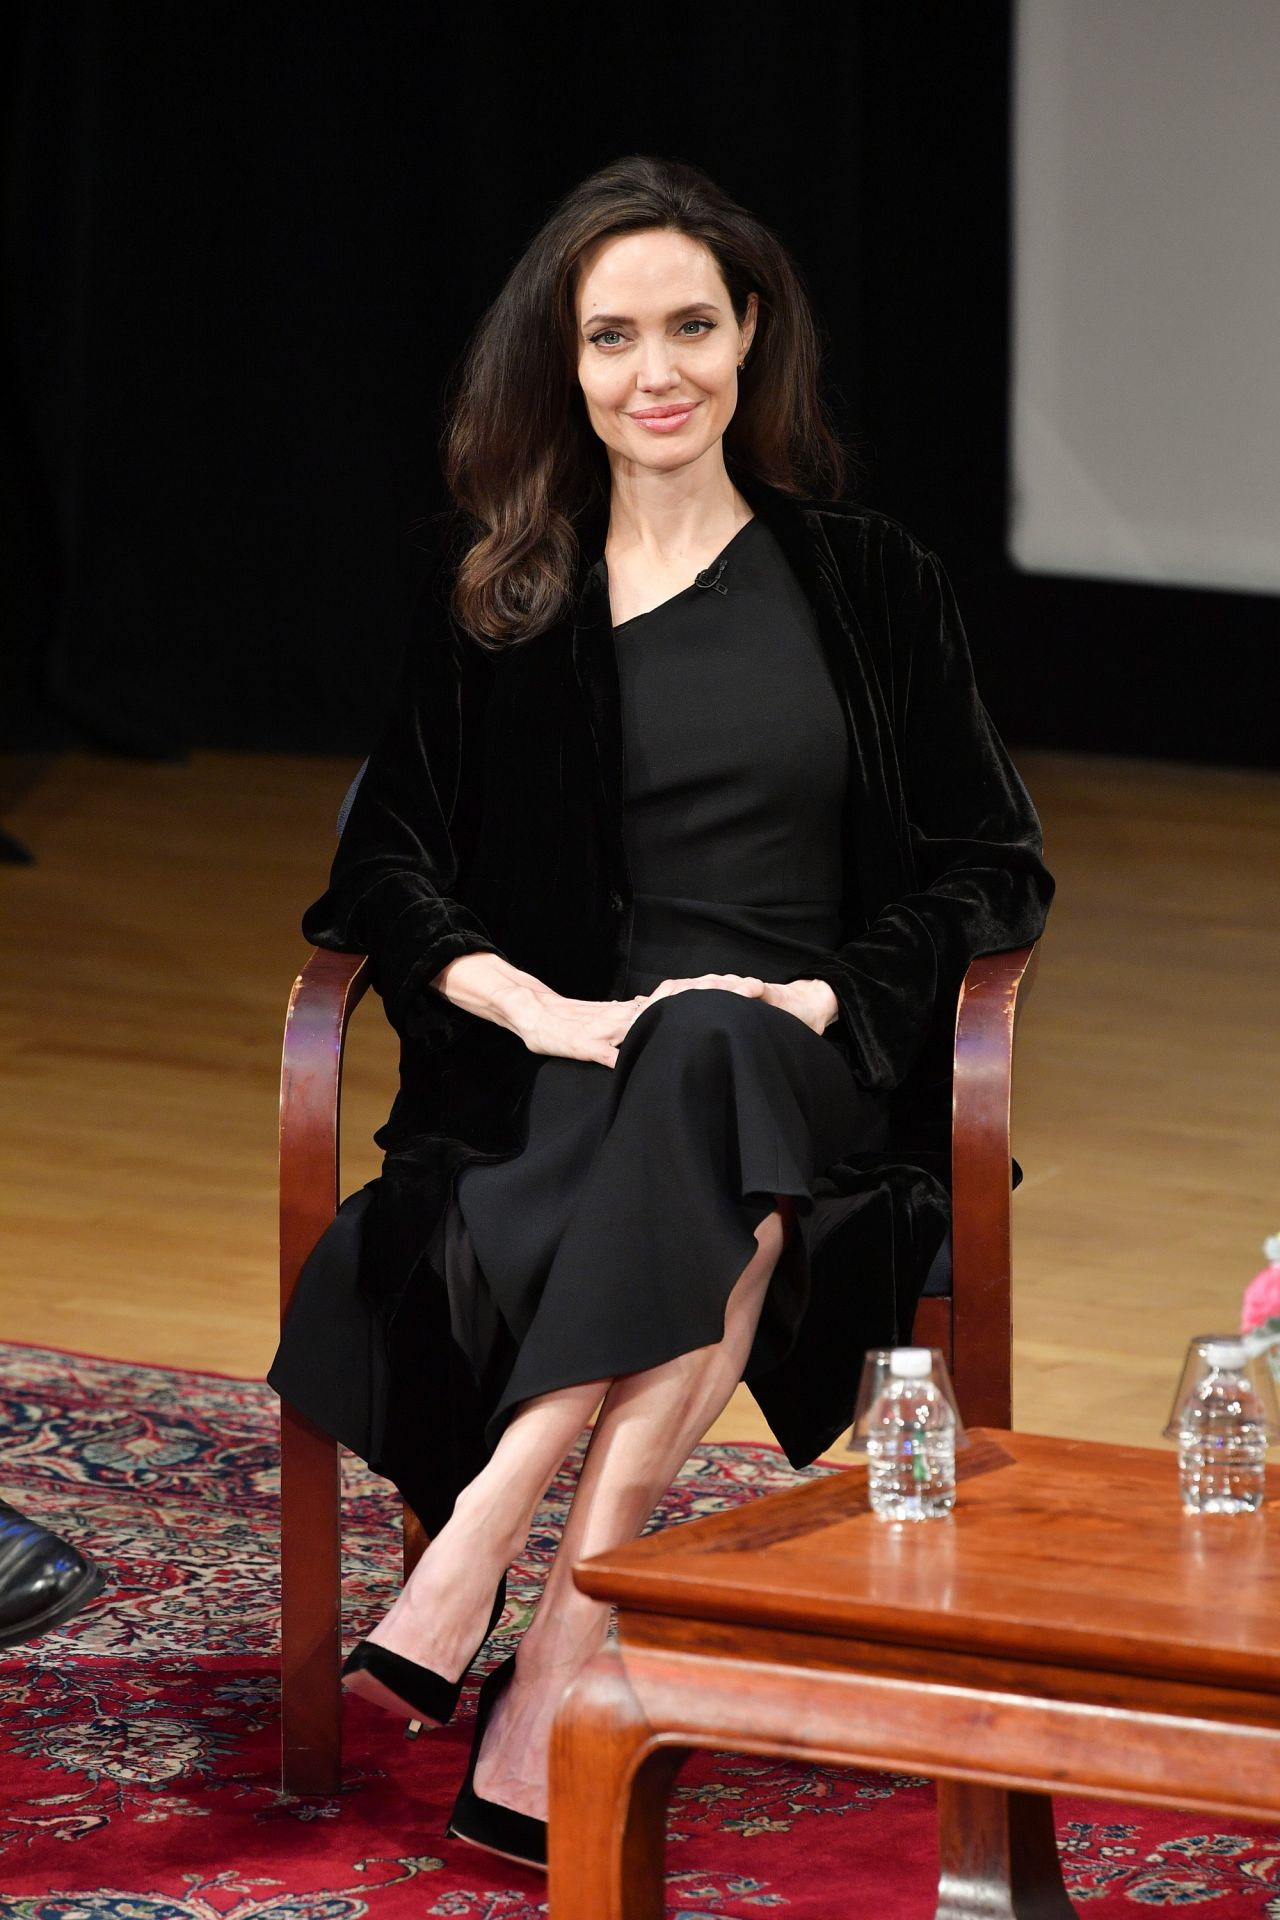 http://celebmafia.com/wp-content/uploads/2017/12/angelina-jolie-light-after-darkness-memory-resilience-and-renewal-in-cambodia-siscussion-at-asia-society-in-nyc-12-14-2017-2.jpg